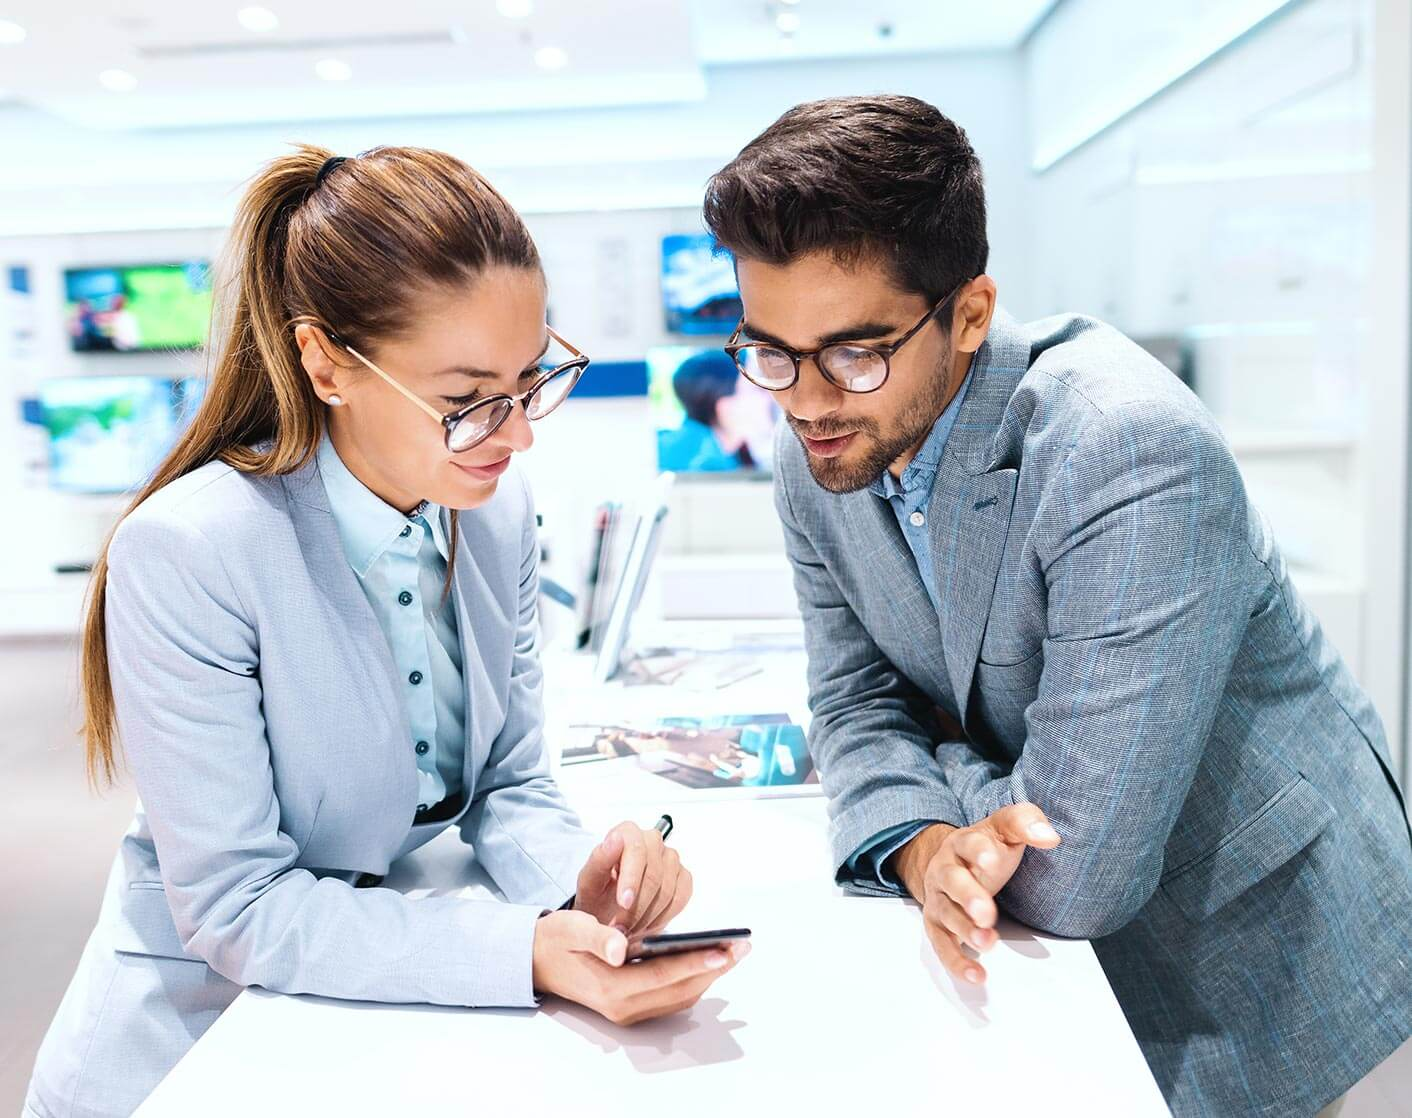 professional man and woman leaning on sales counter looking at a mobile phone